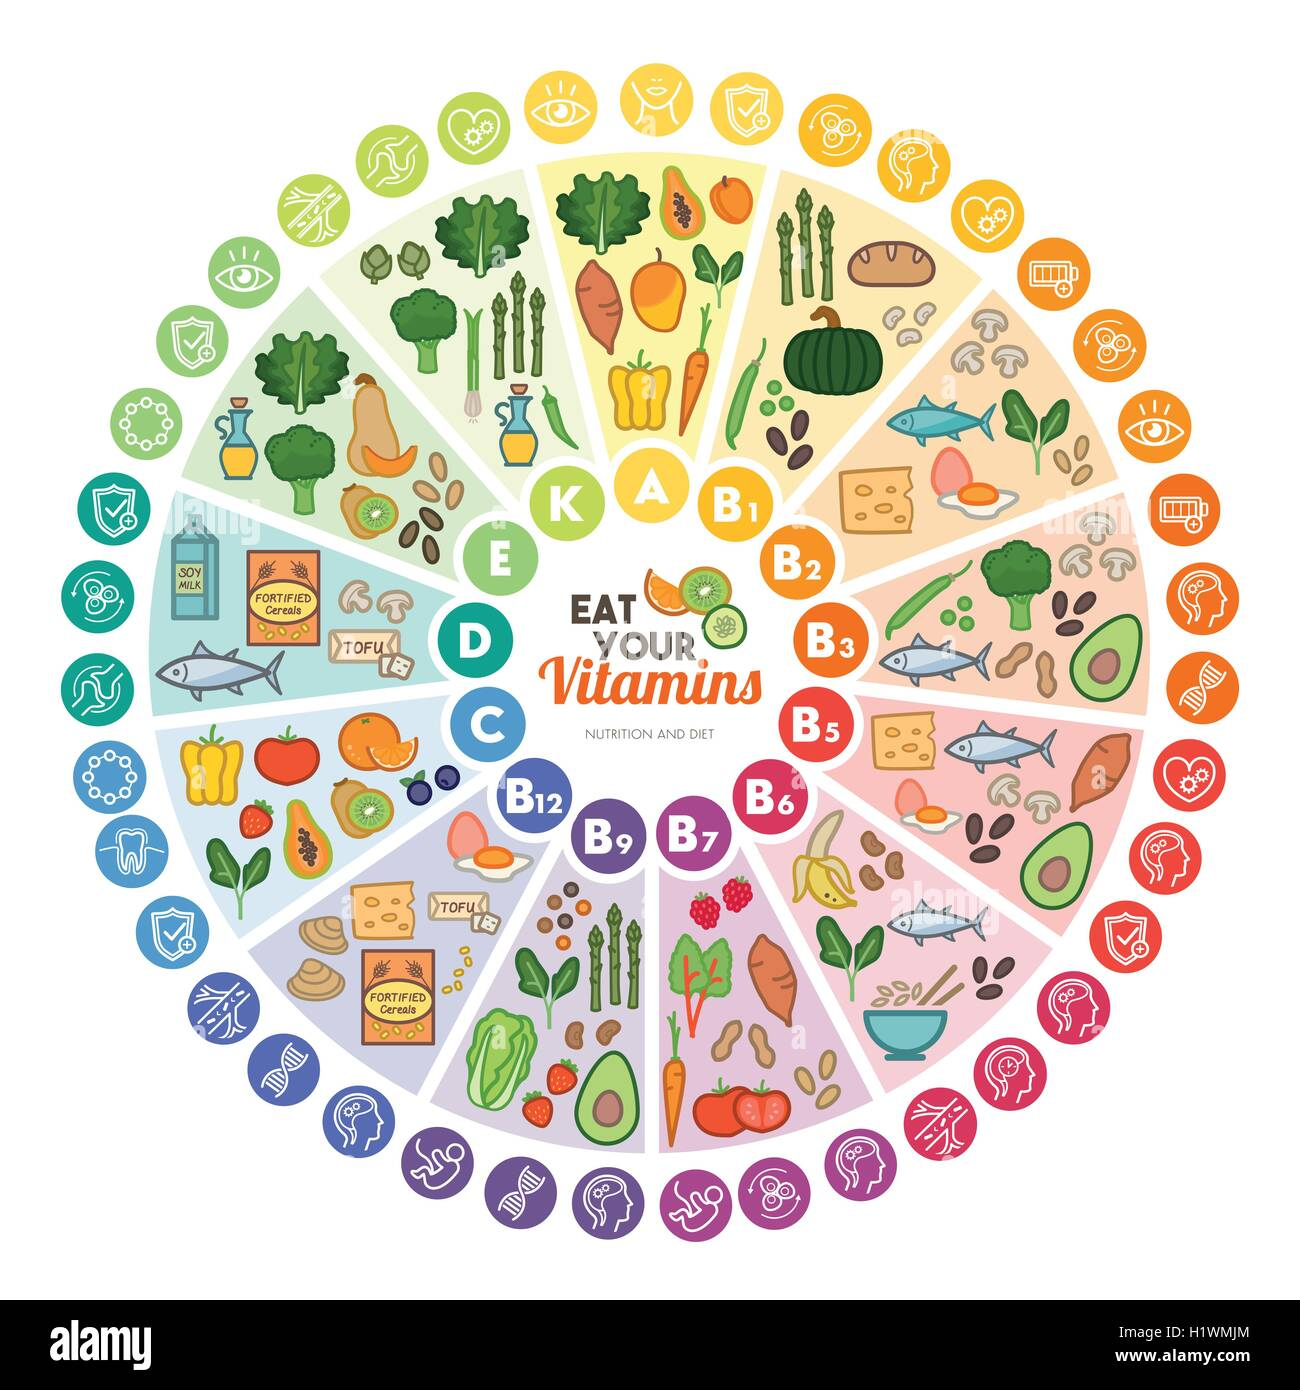 vitamine chart: Vitamin food sources and functions rainbow wheel chart with food